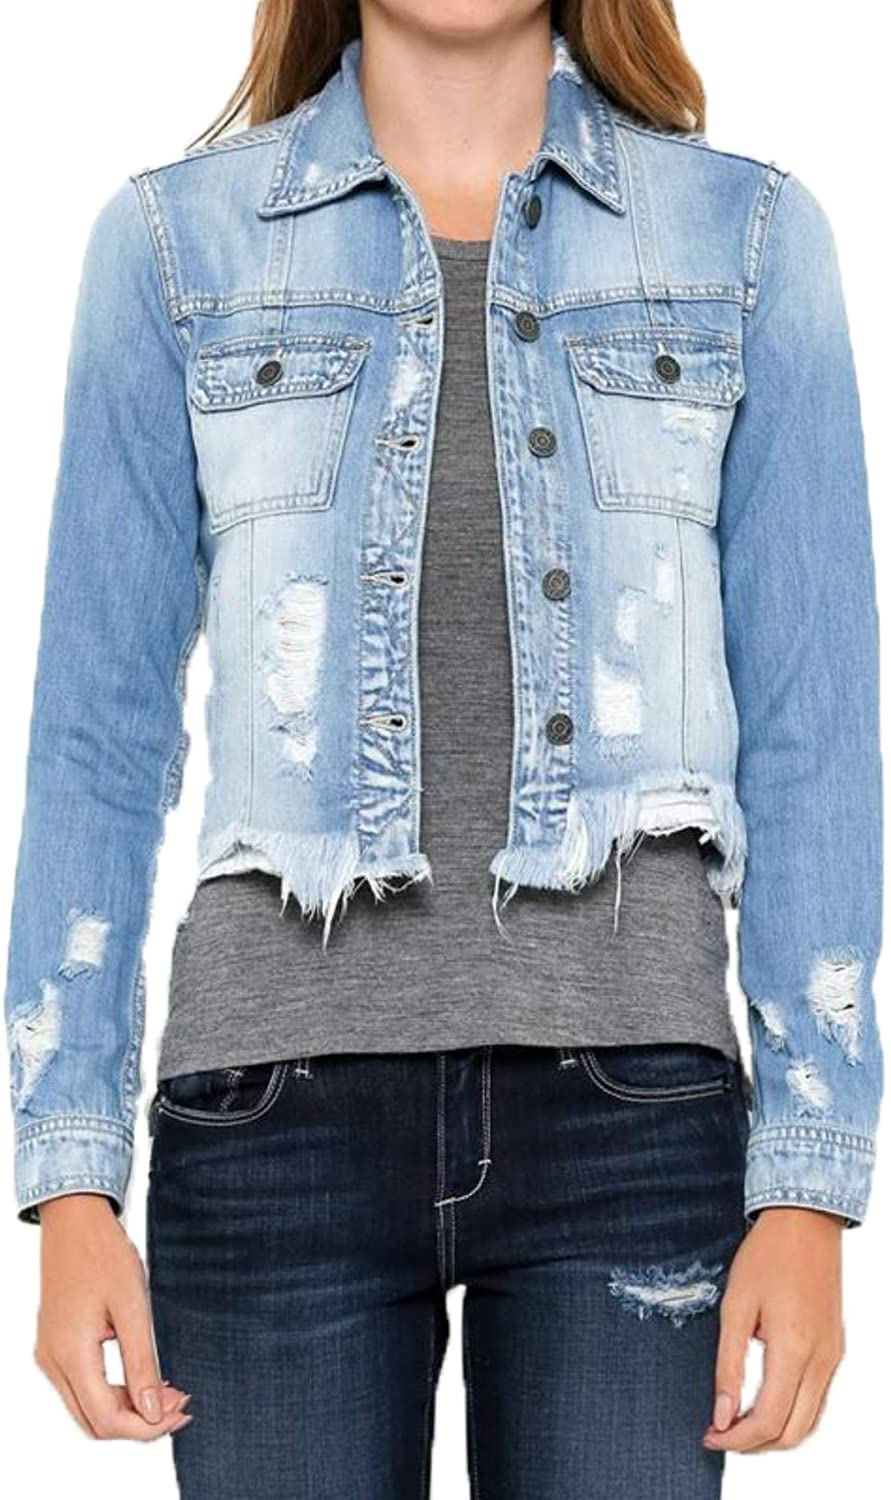 Hidden - Jeans Fitted Jean Jacket - Light Blue | Outfit in Warm Weather for Women & Girls.